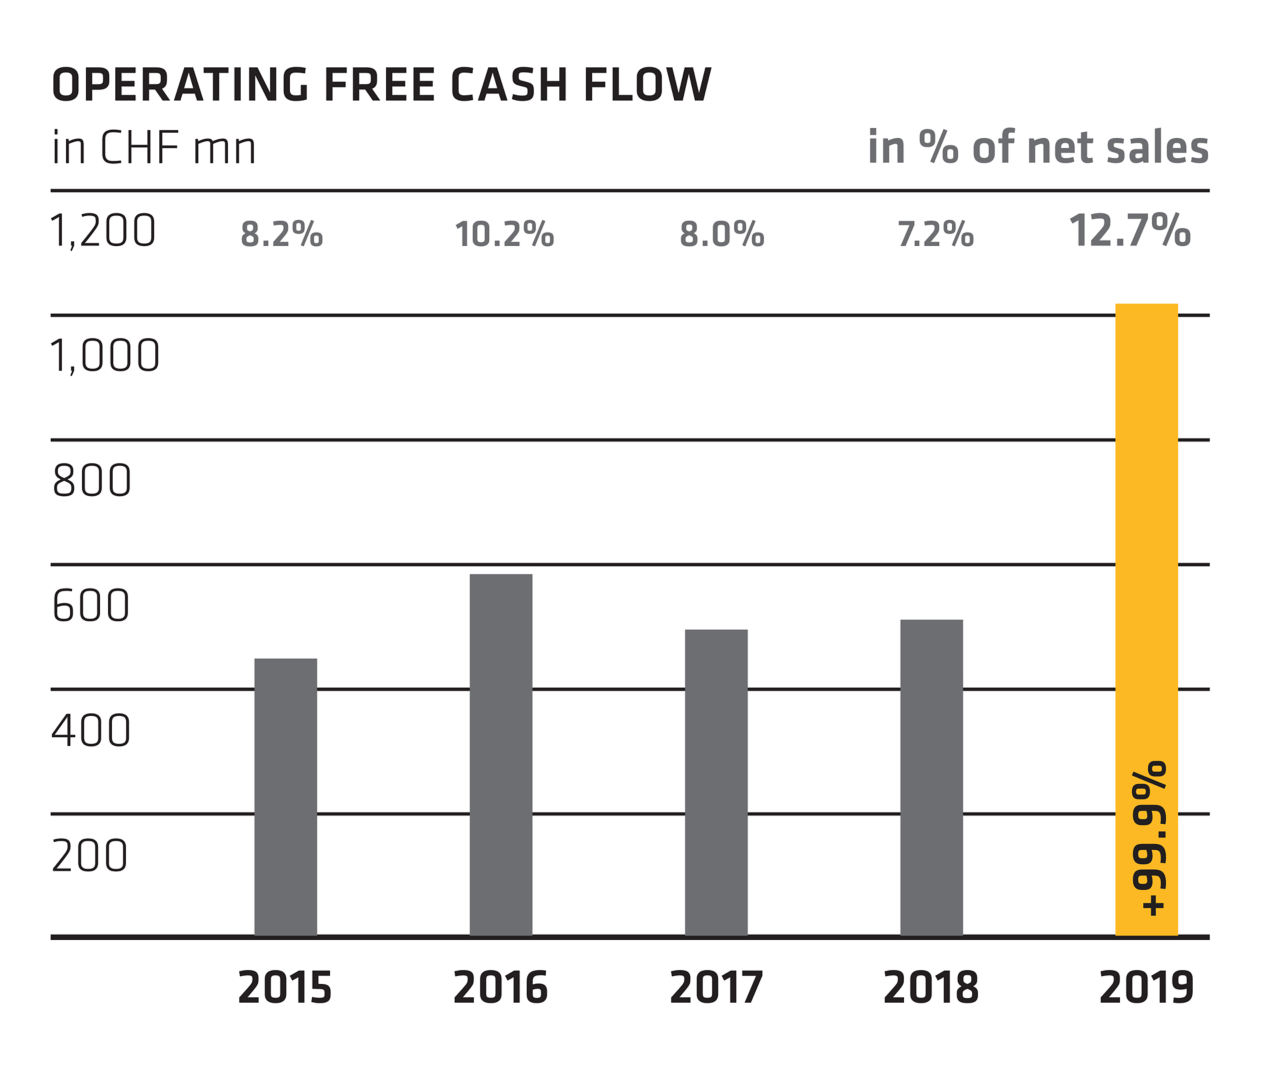 Operating Free Cash Flow - Annual Report 2019